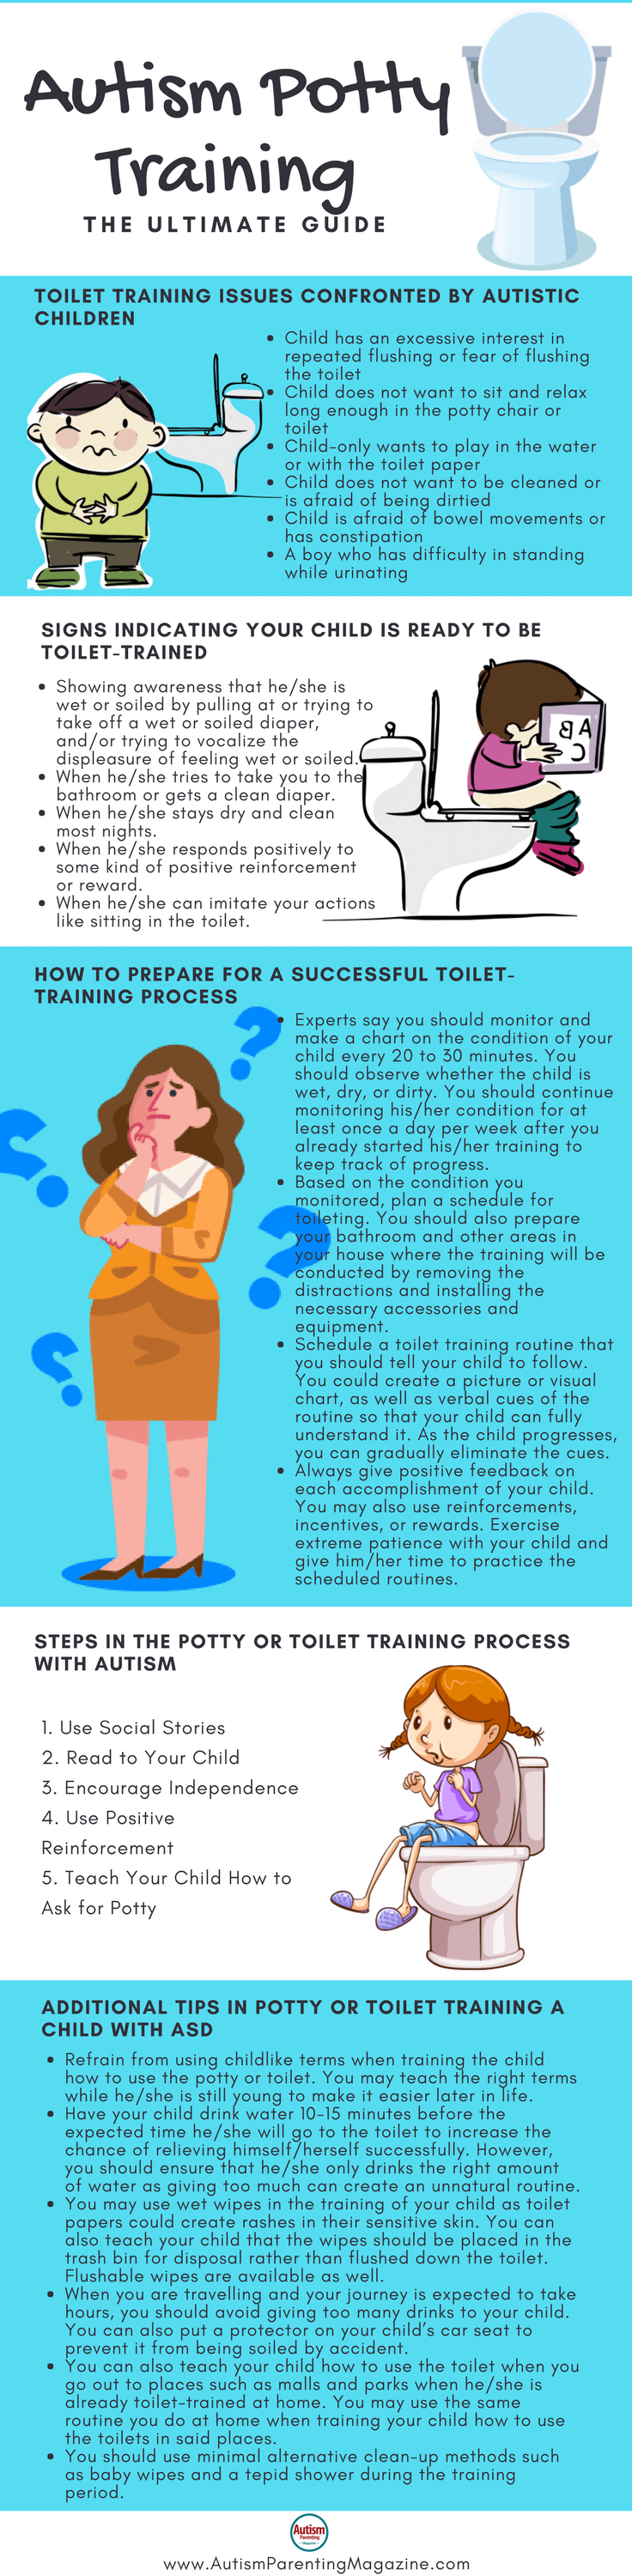 Download our Free Guide - Autism Potty Training https://www.autismparentingmagazine.com/autism-potty-training-guide/